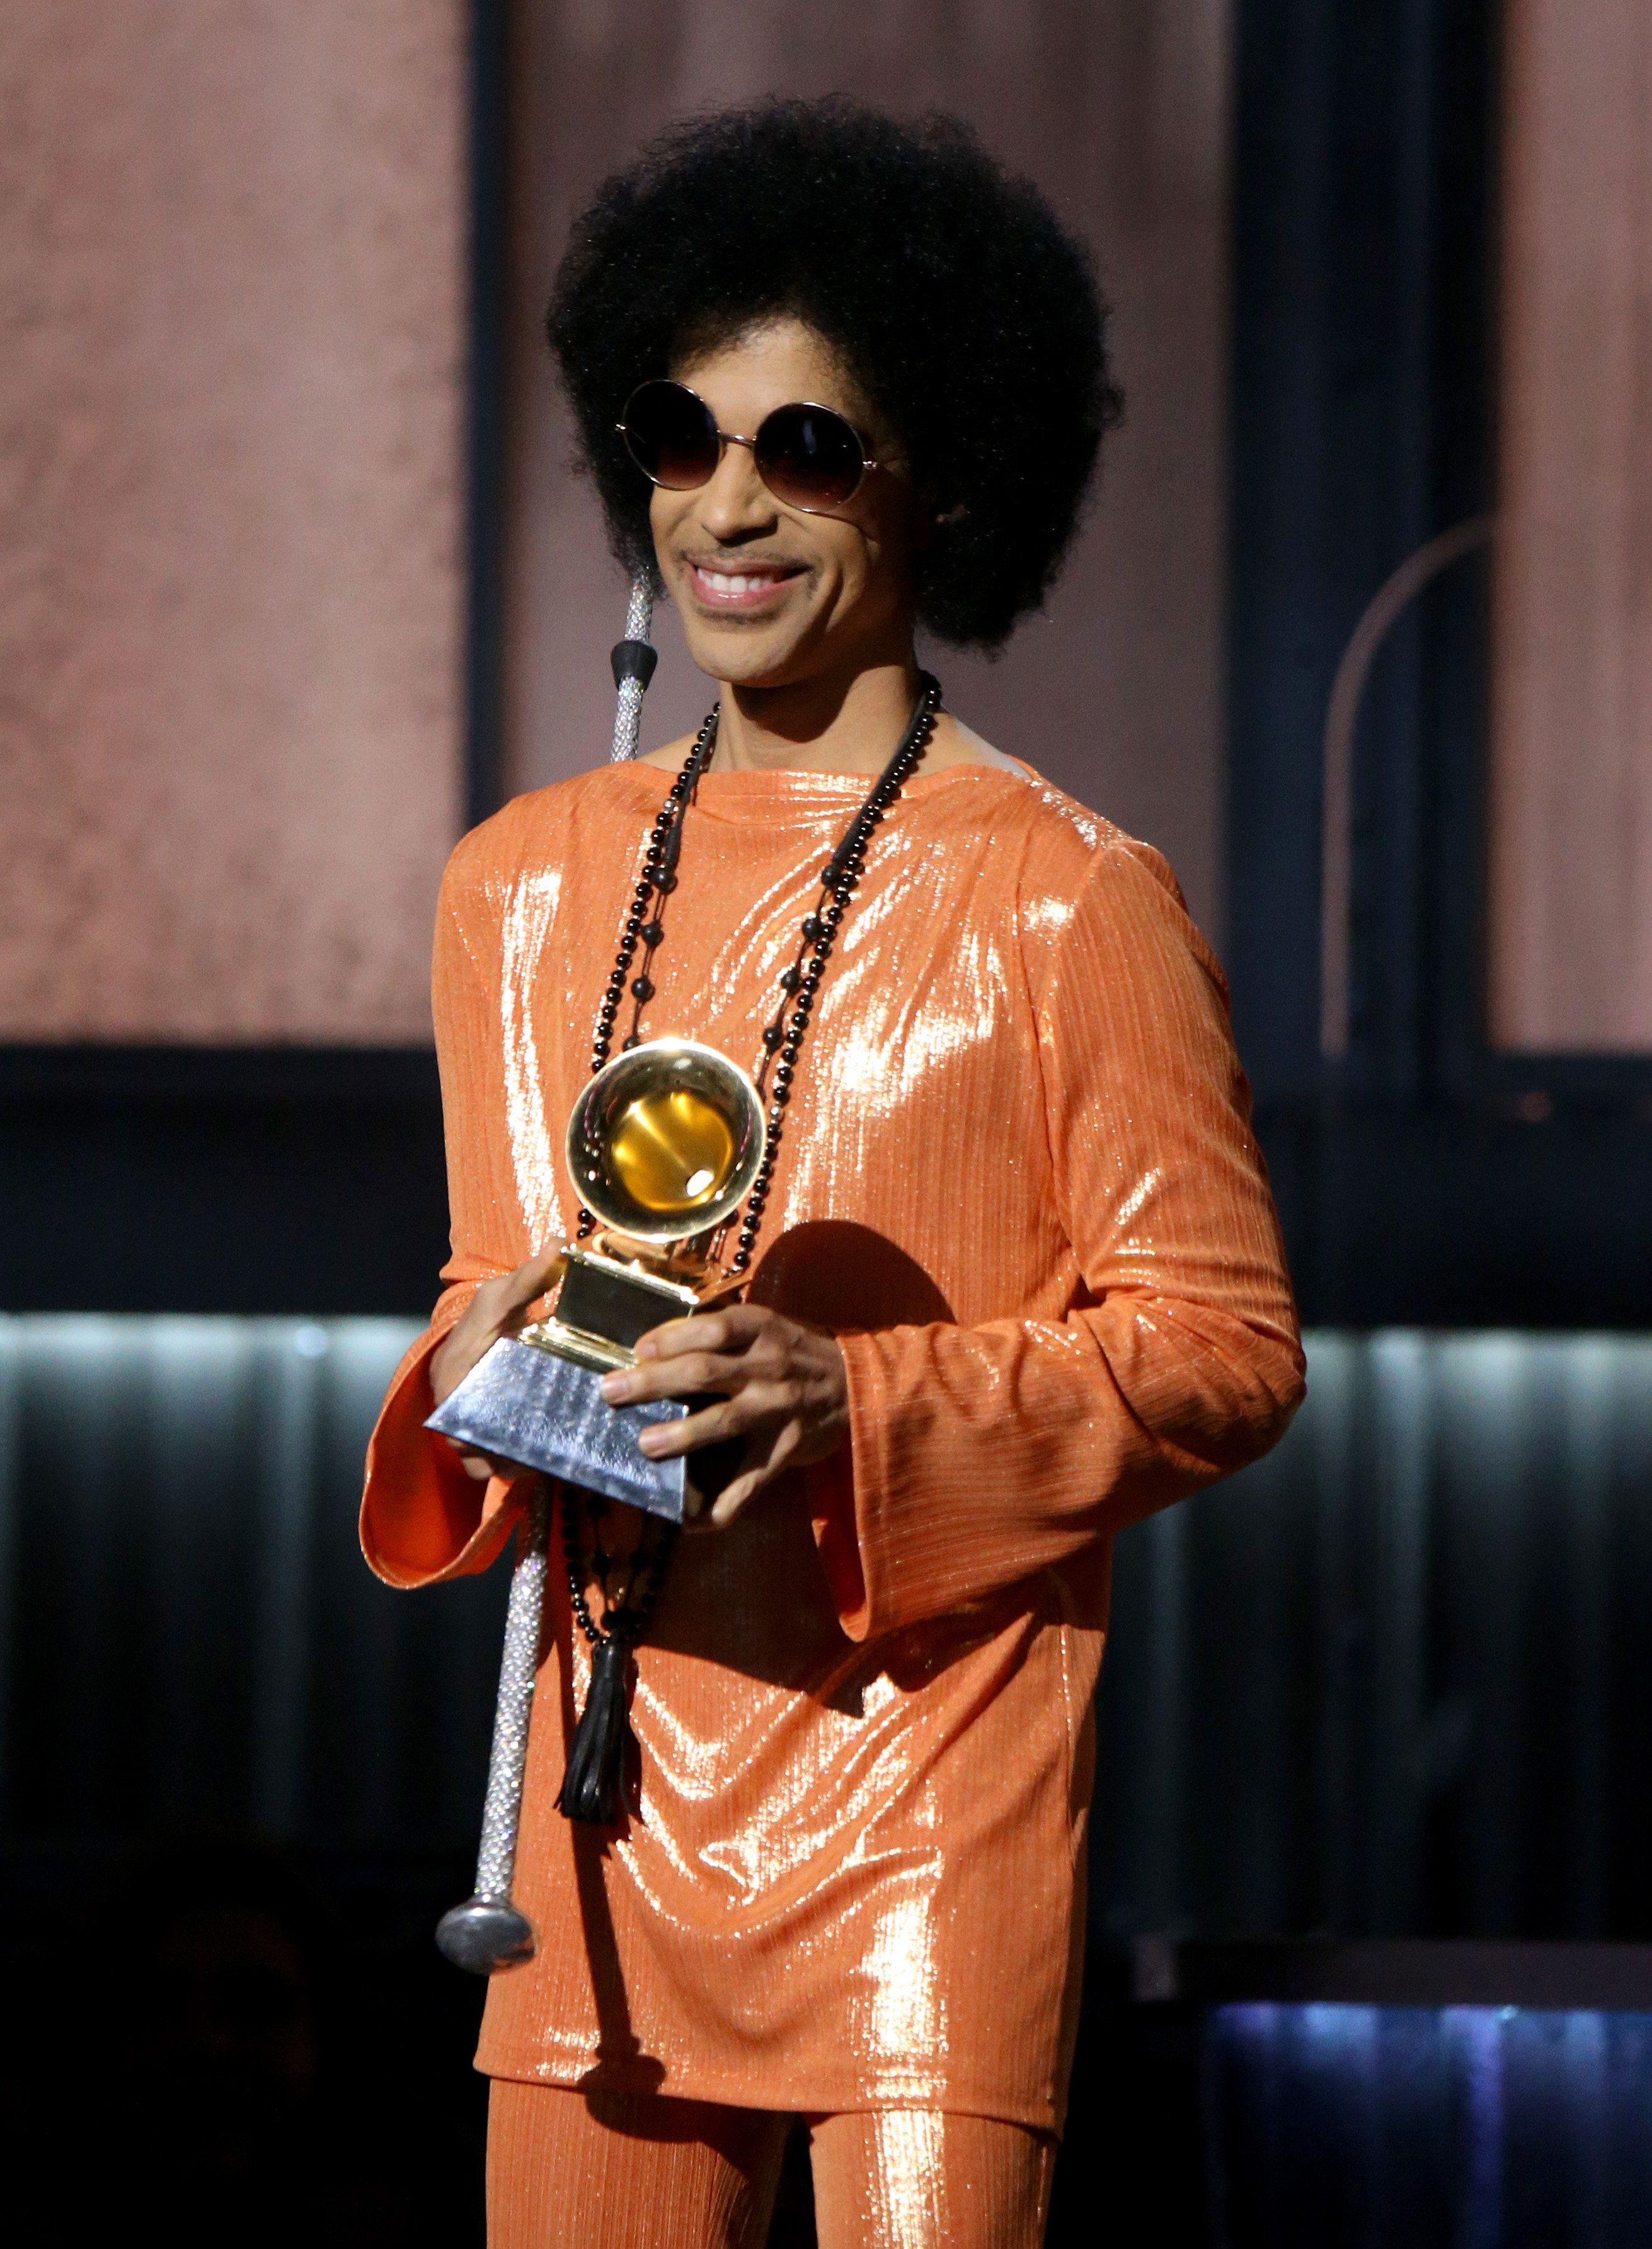 LOS ANGELES, CA - FEBRUARY 08:  Singer/songwriter Prince speaks onstage during The 57th Annual GRAMMY Awards at STAPLES Center on February 8, 2015 in Los Angeles, California.  (Photo by Michael Tran/FilmMagic)